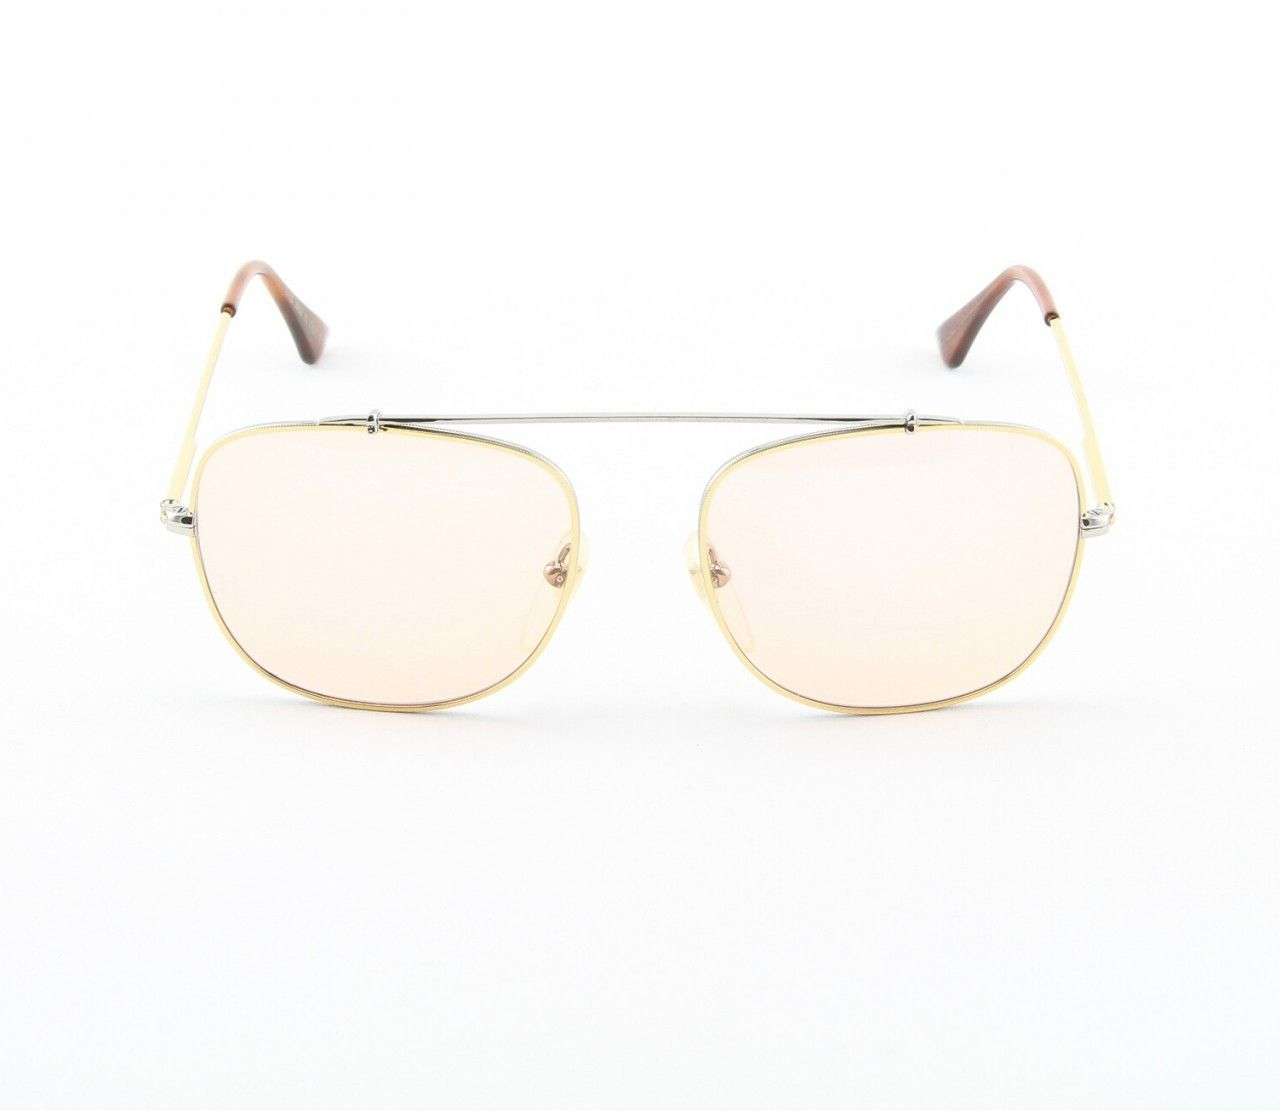 75342b6ee6 Super Primo 717 1M Sunglasses Gold Chrome with Pink Zeiss Lenses by  RETROSUPERFUTURE - Theaspecs.com